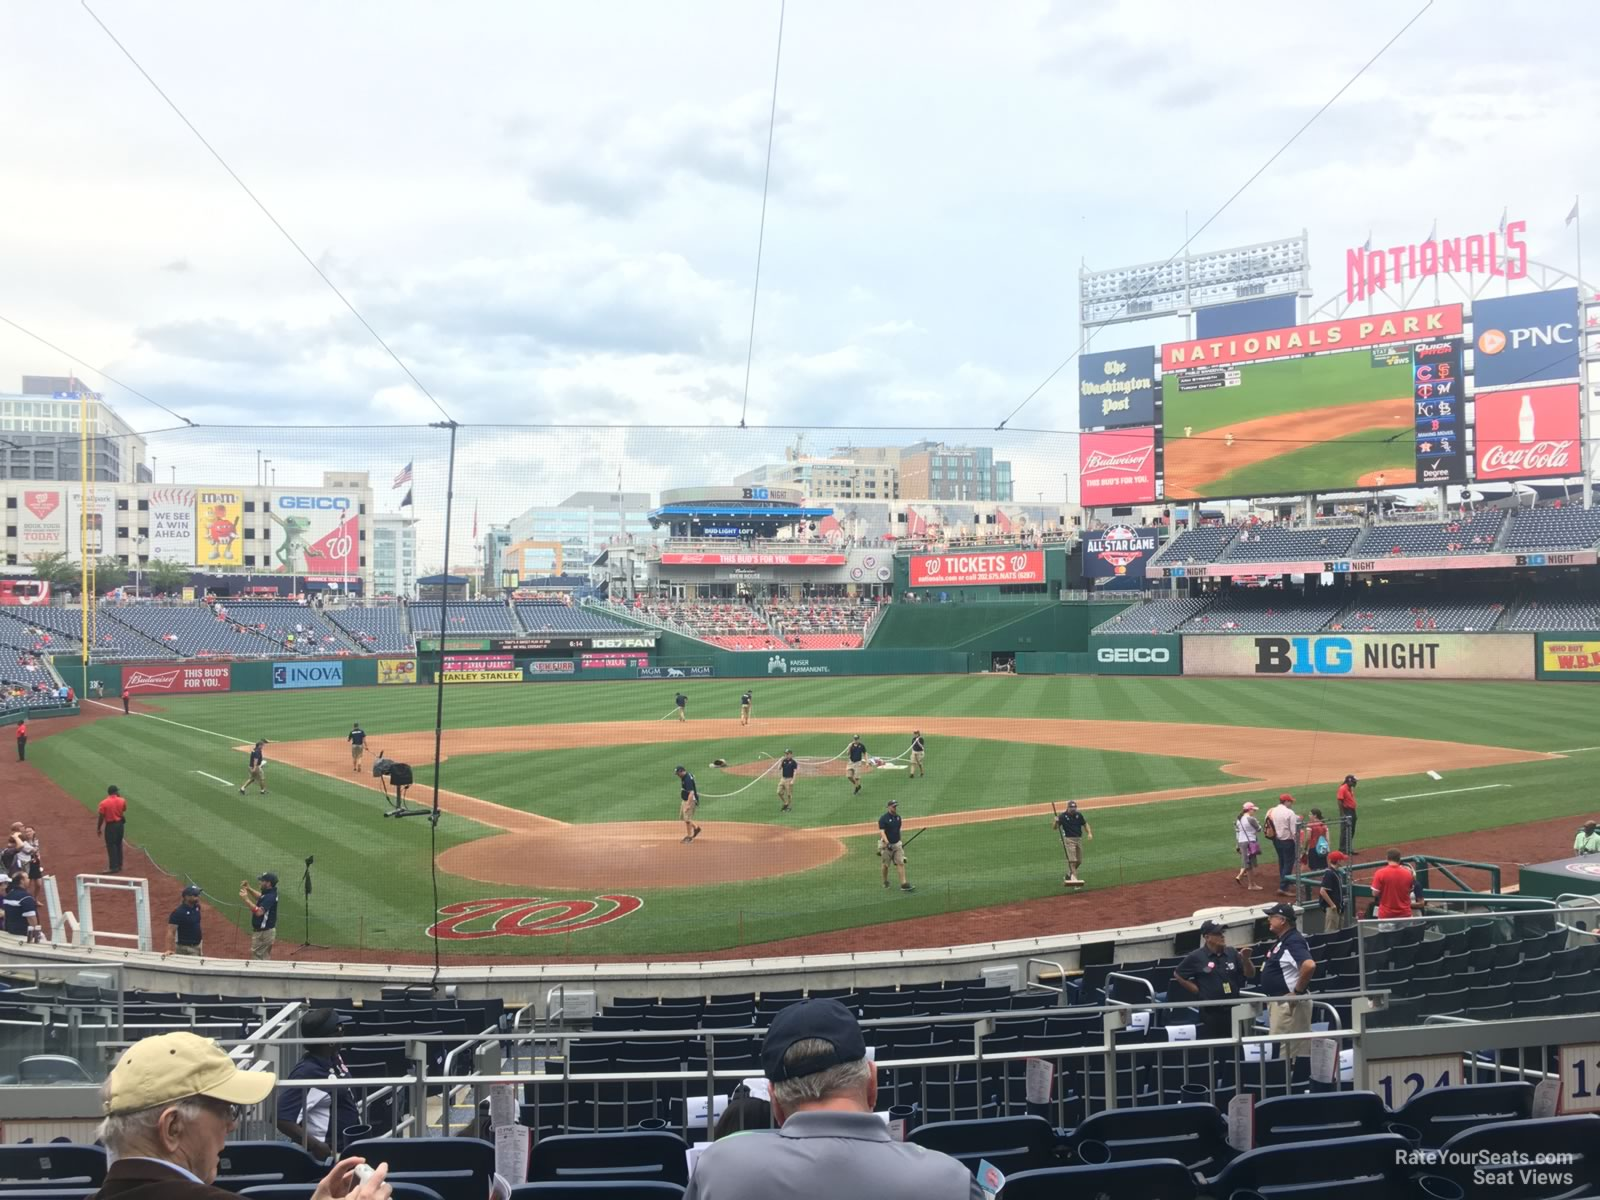 Seat View for Nationals Park Section 124, Row F